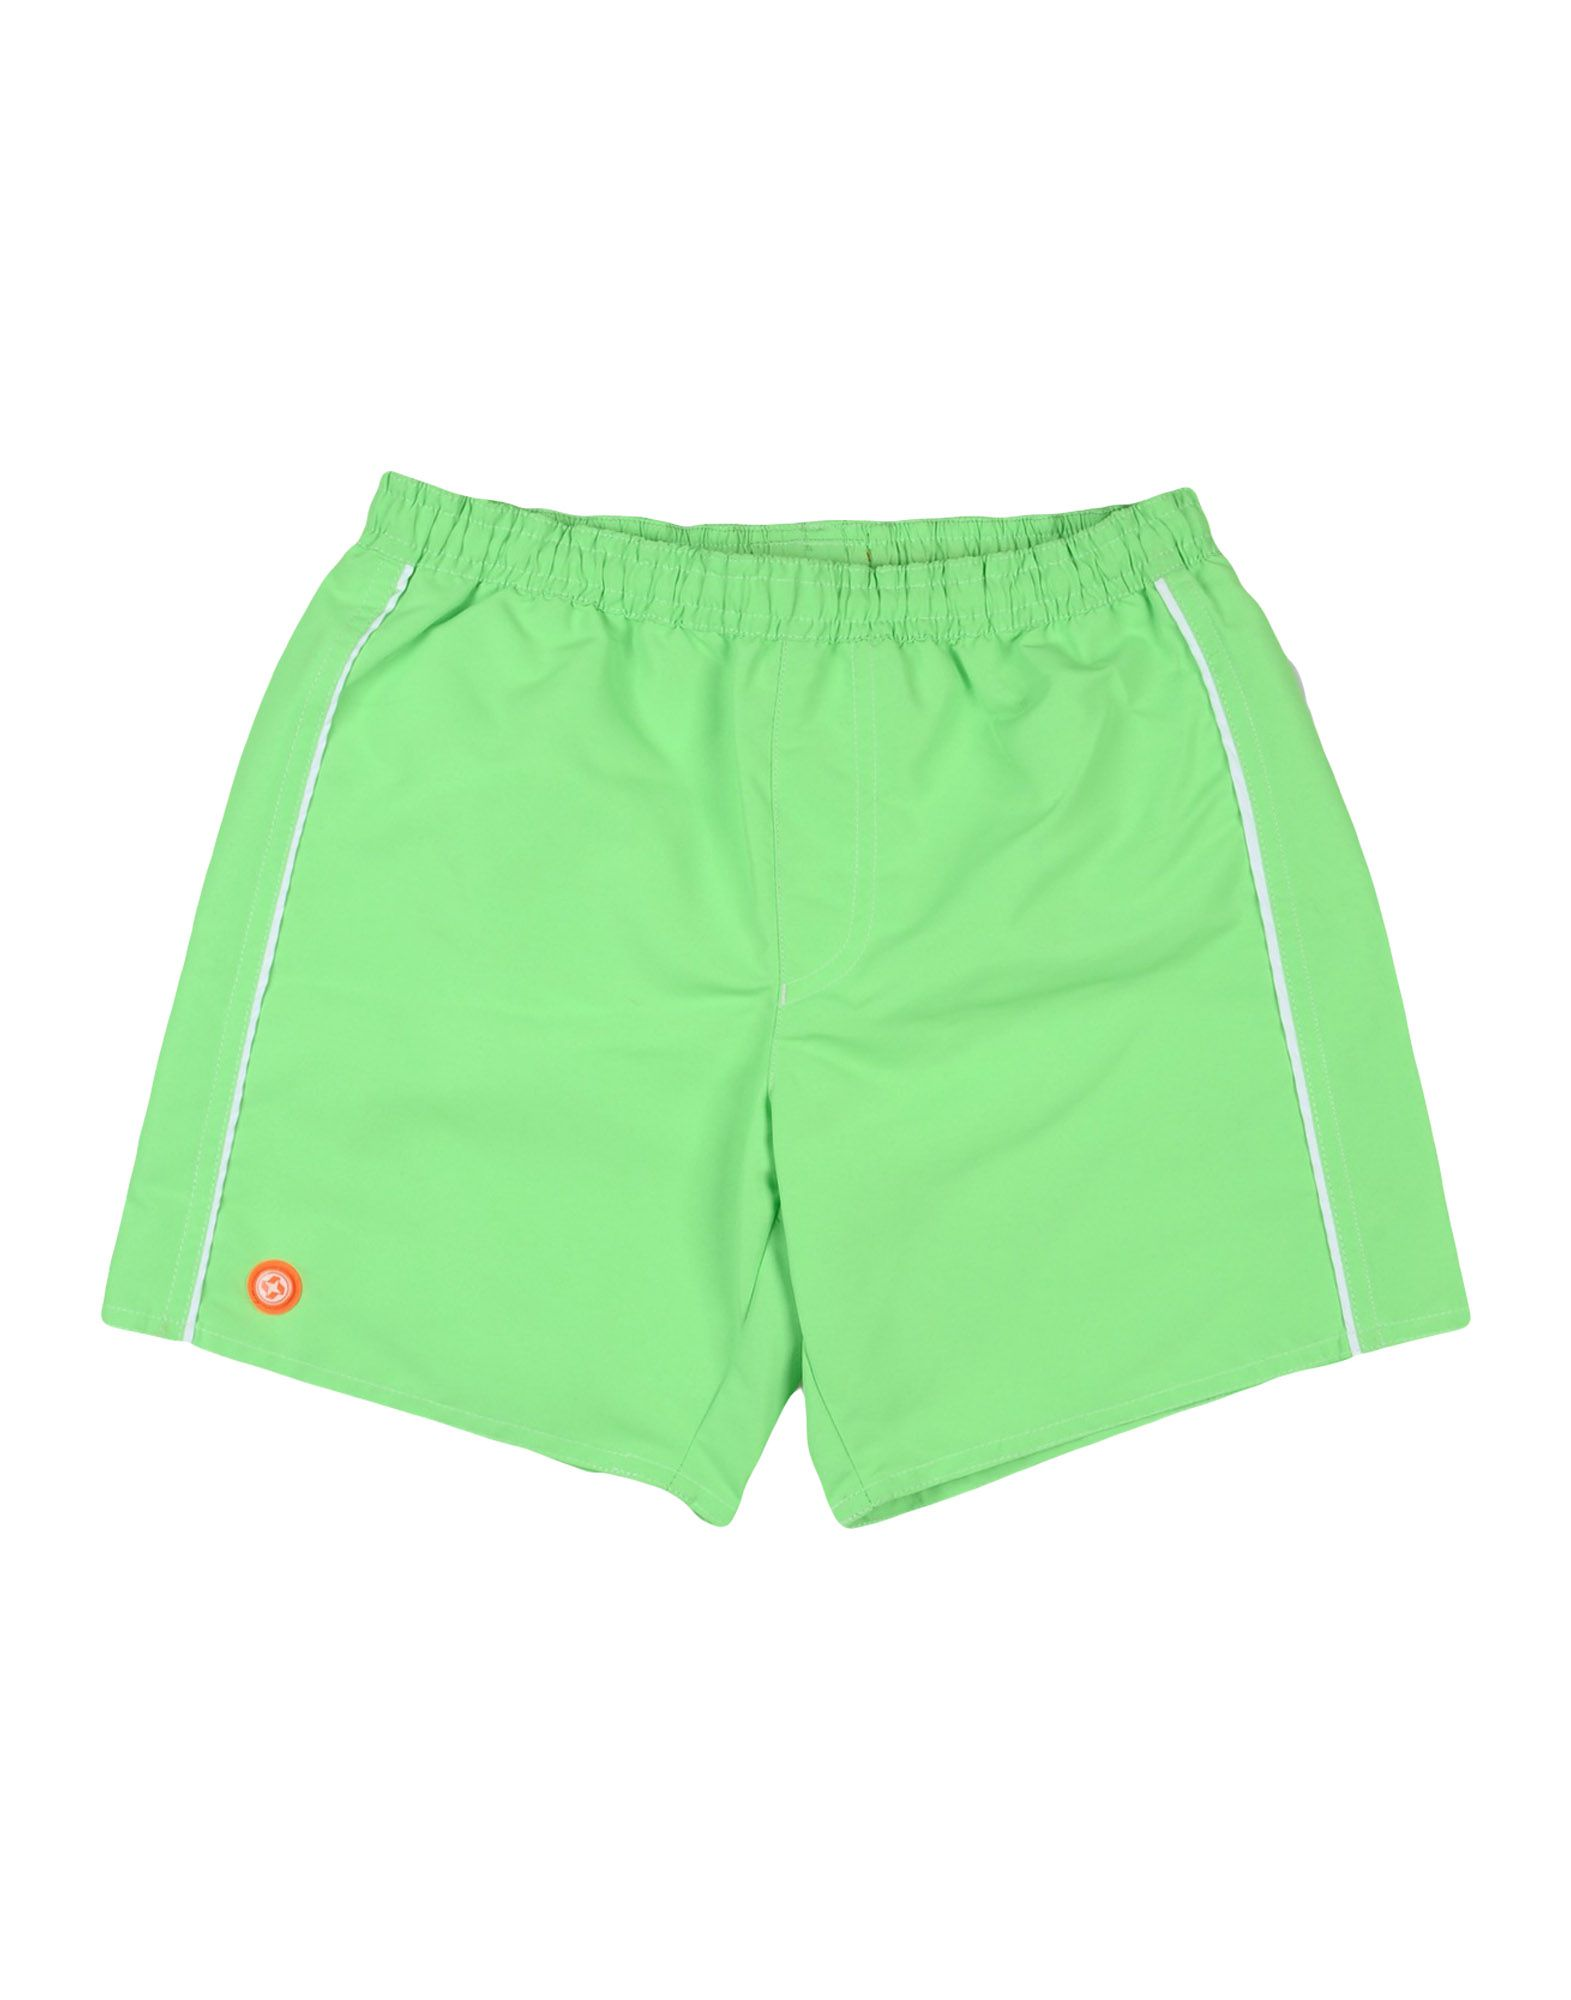 COLMAR Swim trunks